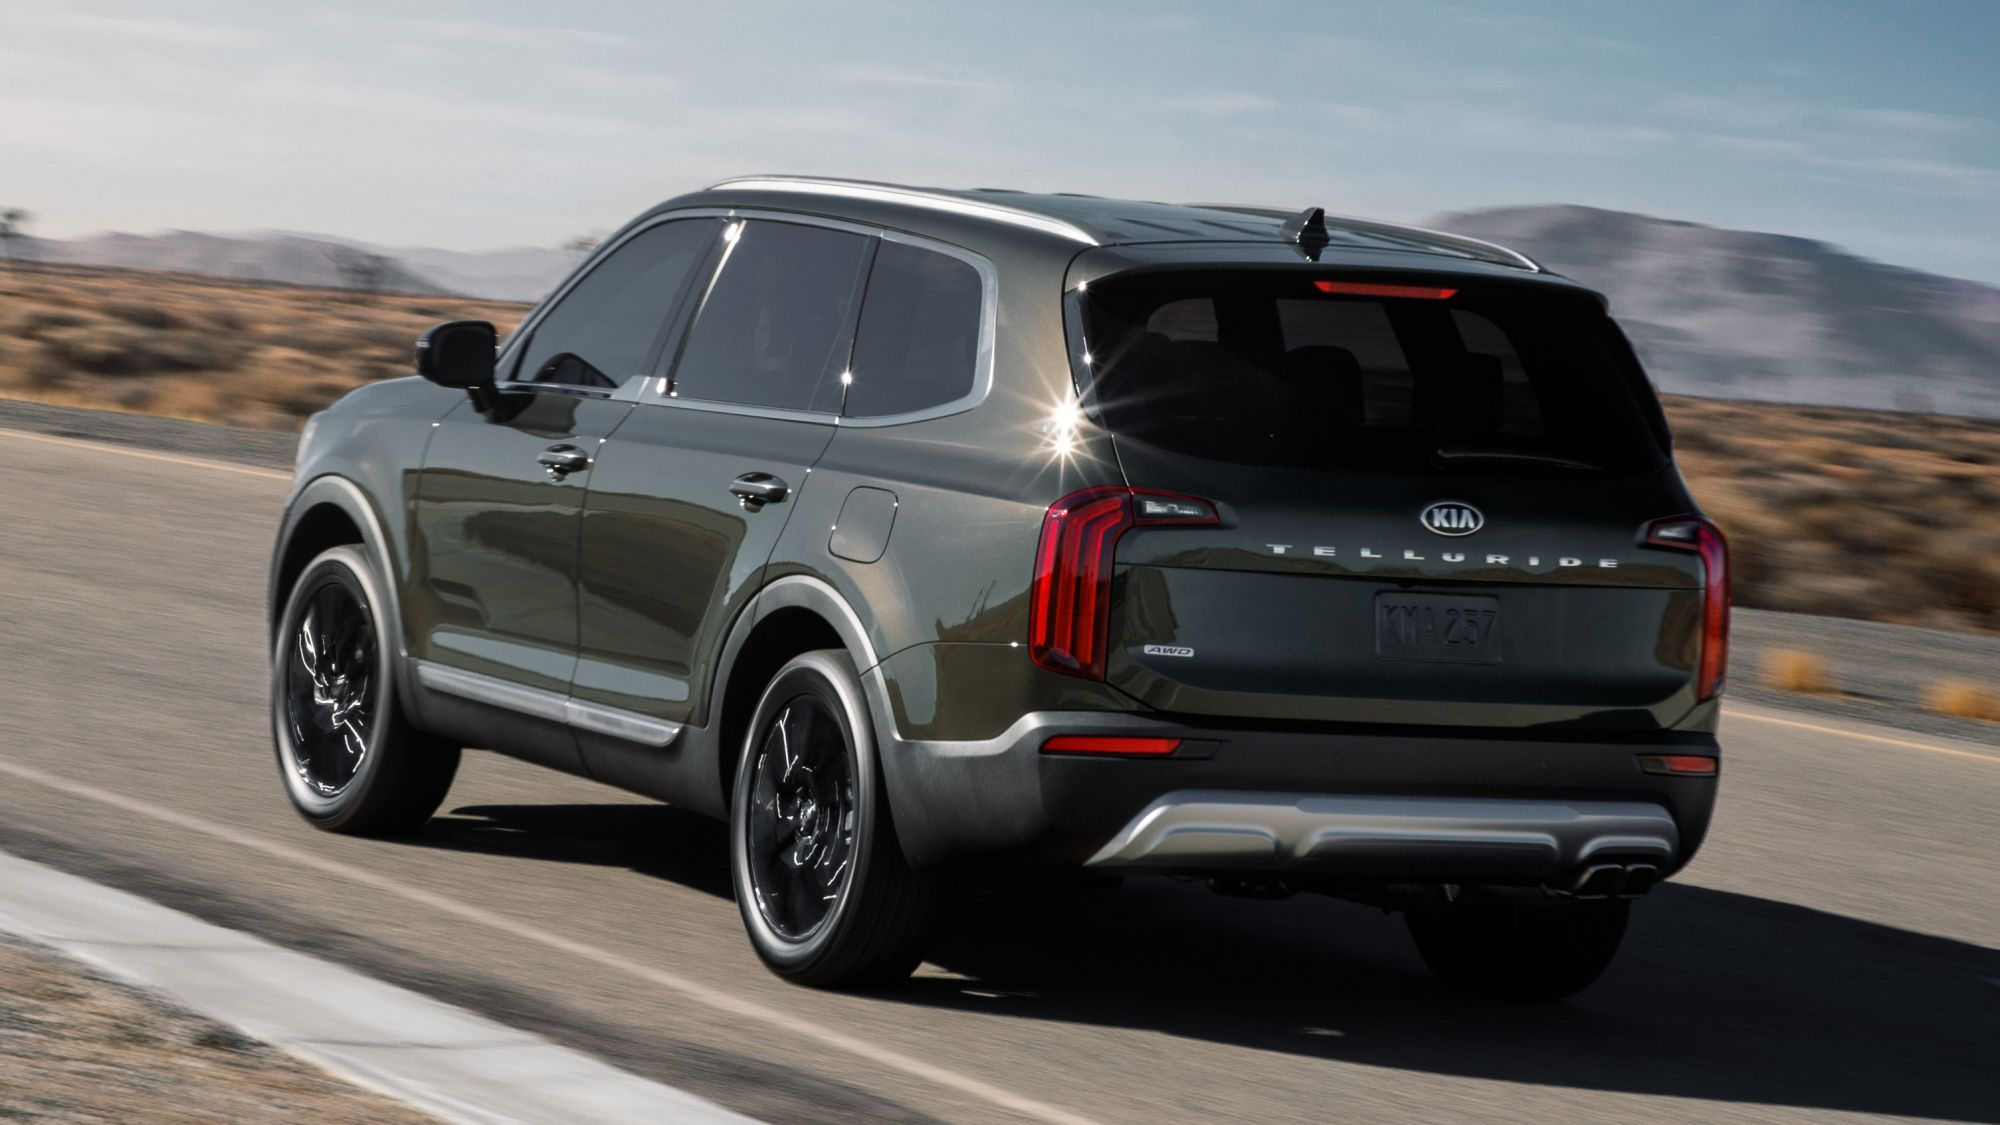 2020 Kia Telluride Reviews With Images Best Midsize Suv Suv